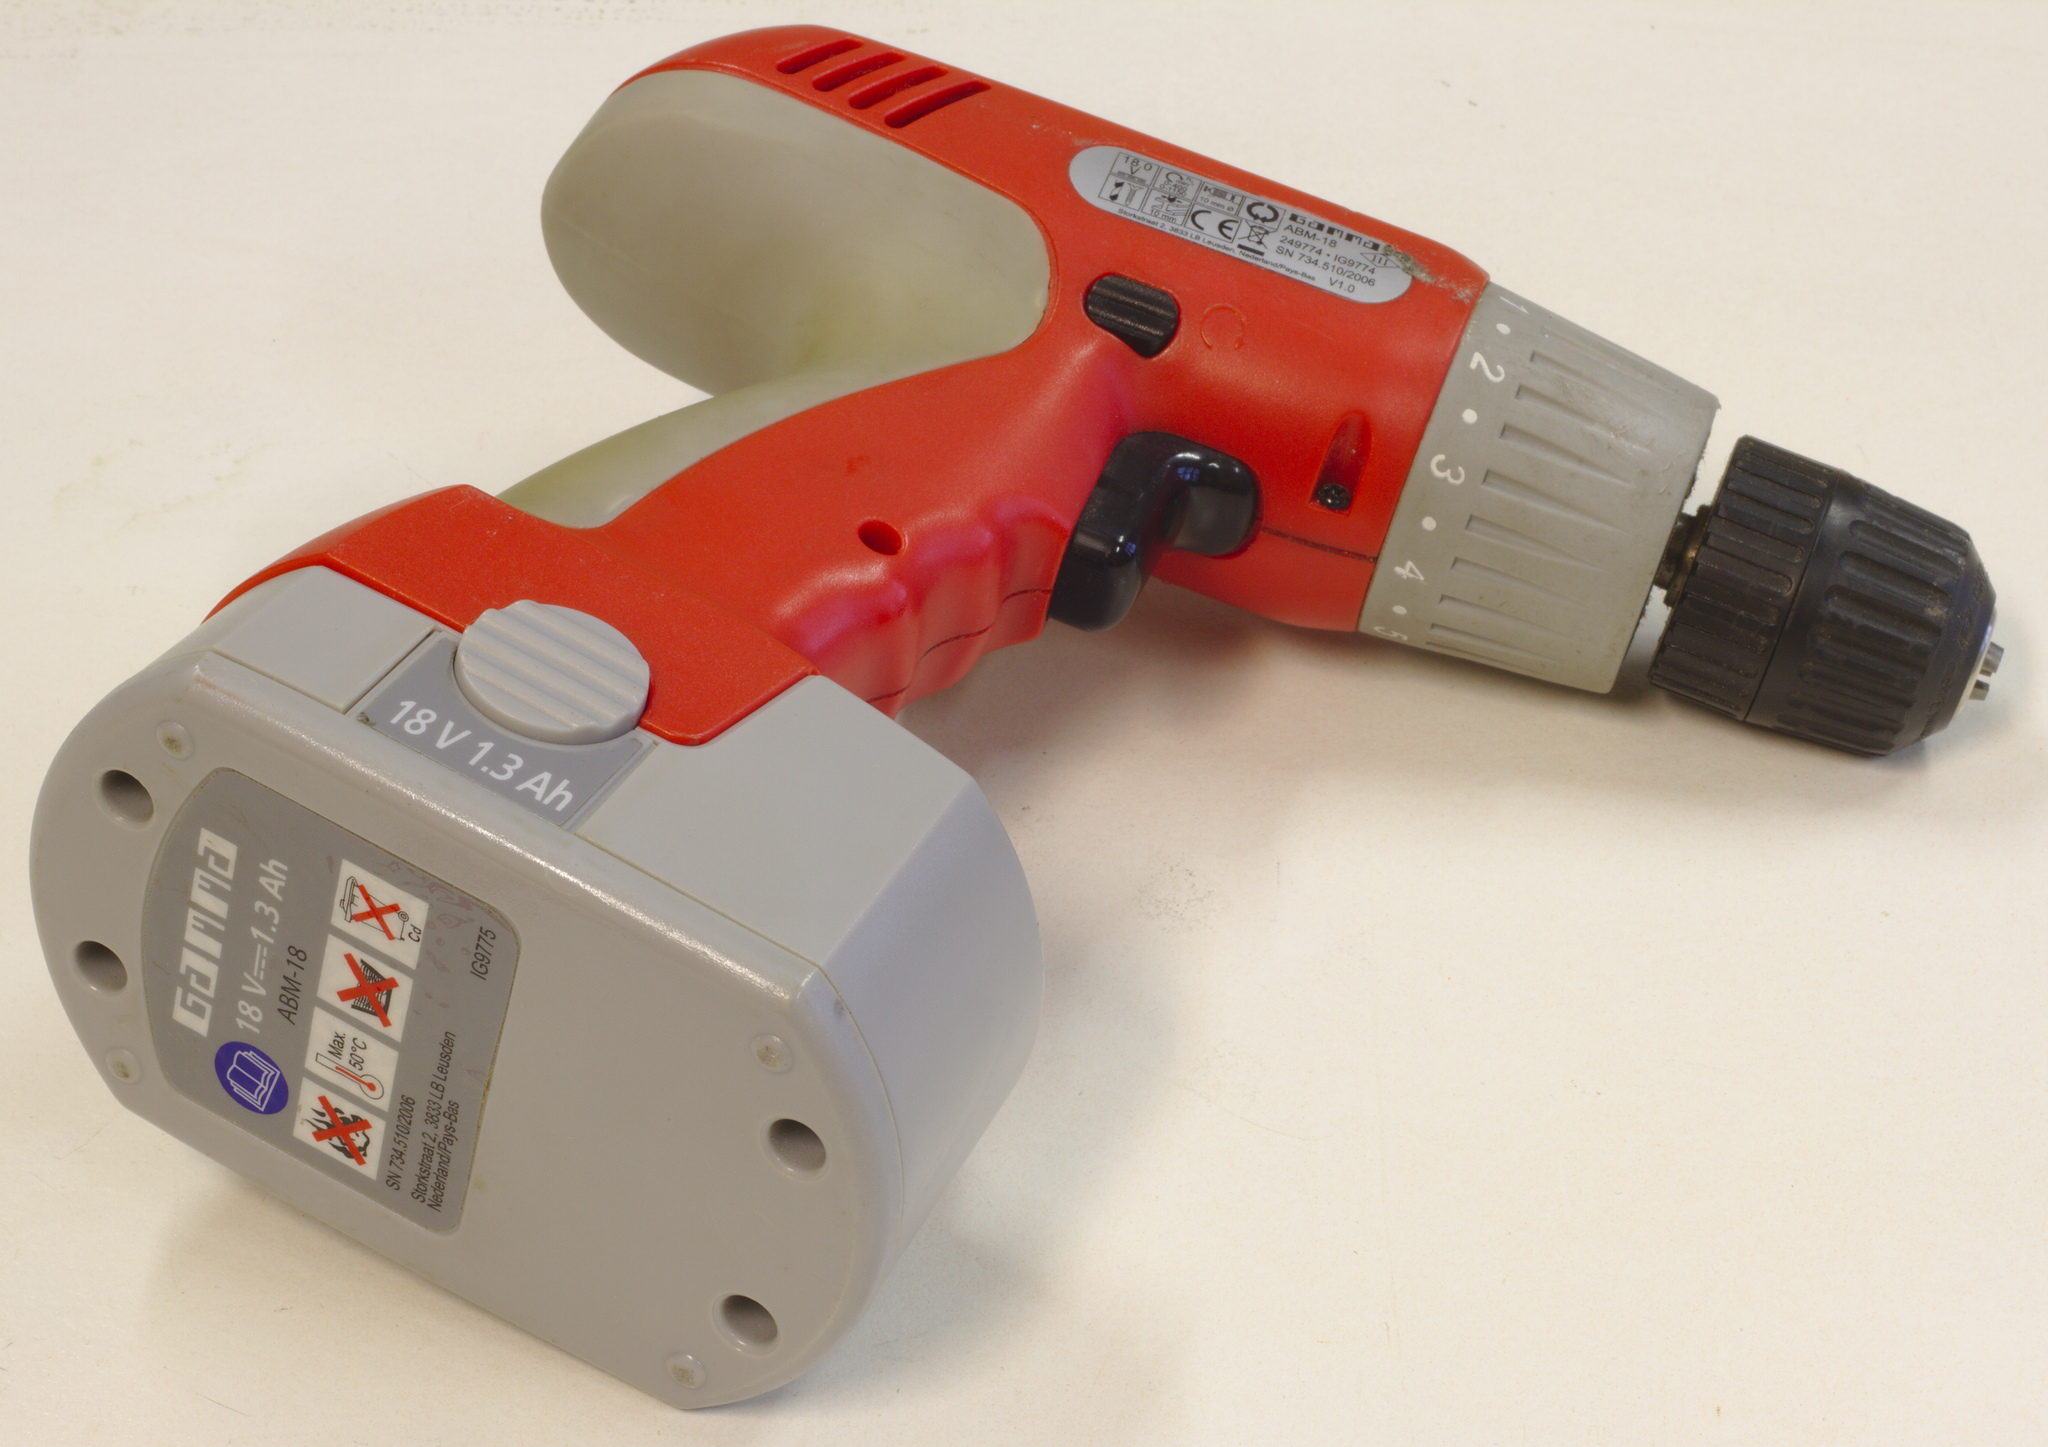 Things To Know Before Buying A Cordless Power Tool